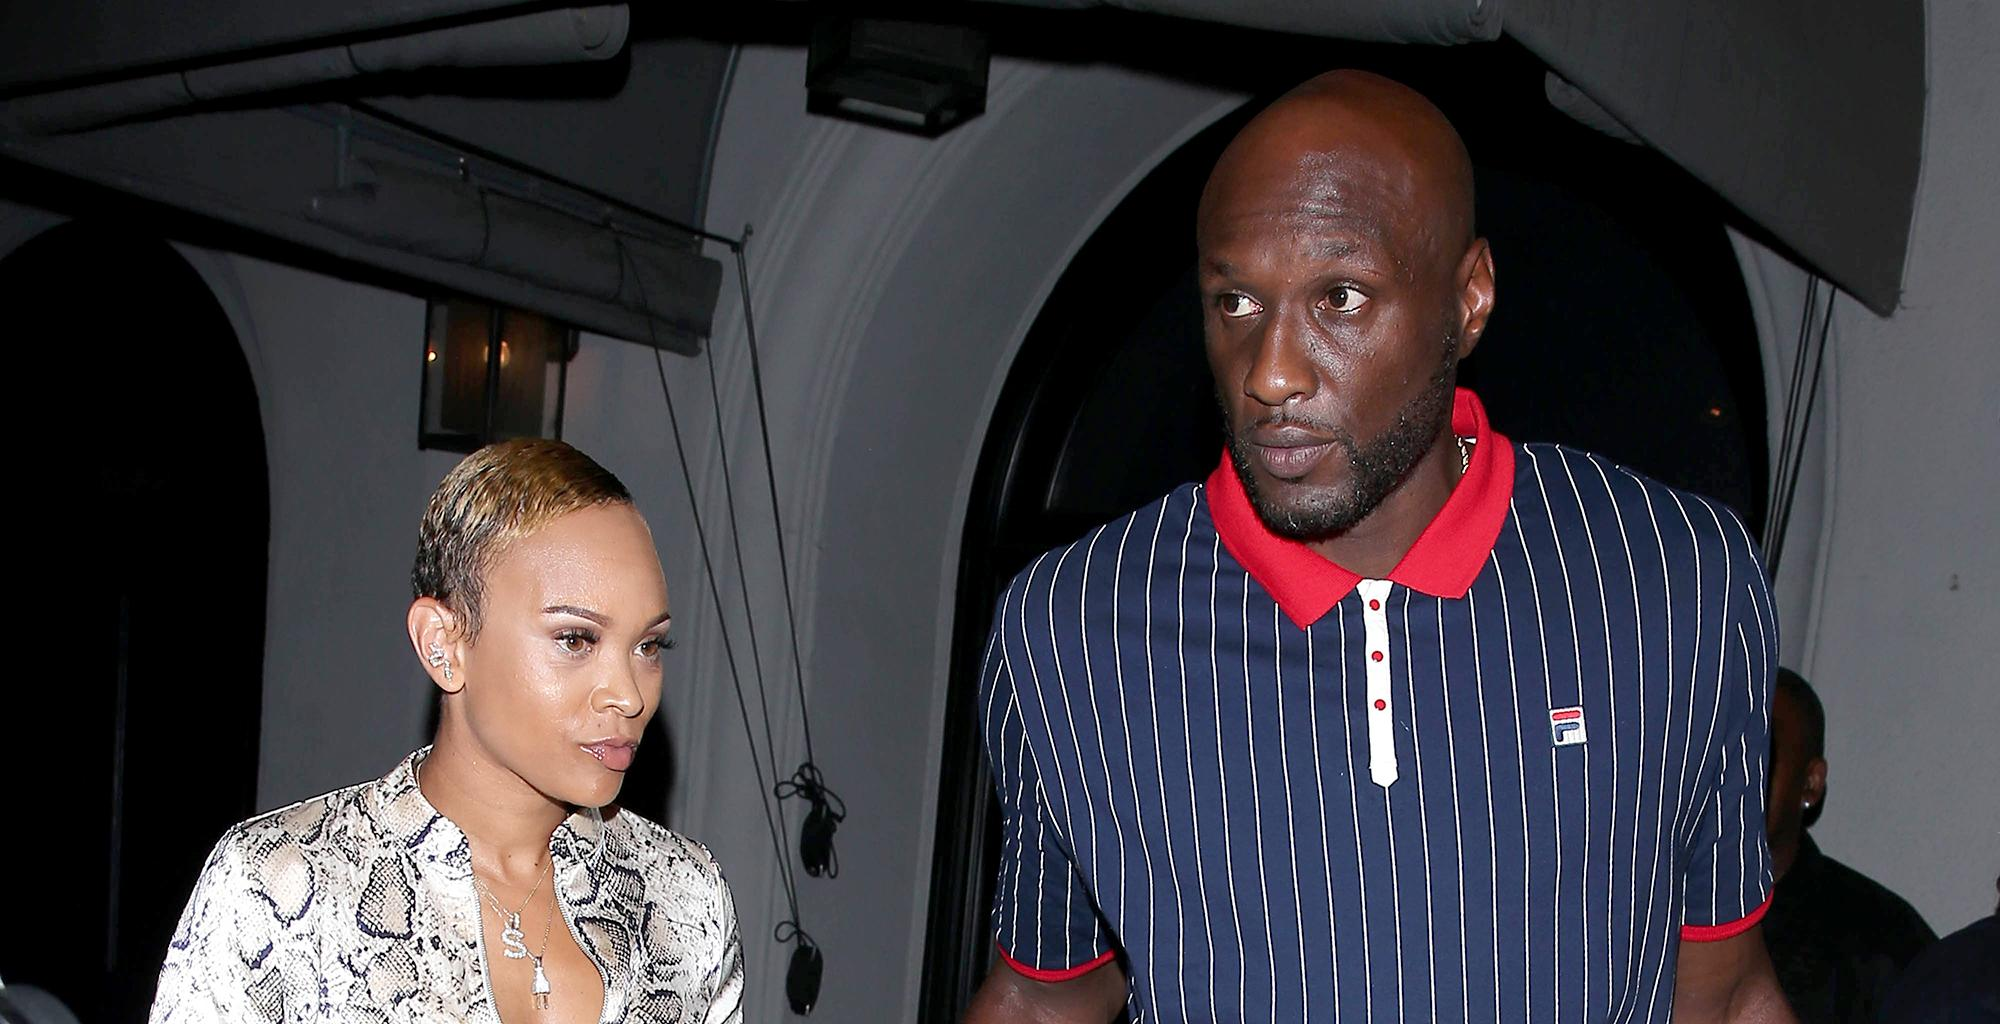 Lamar Odom's Fiance Sabrina Parr Talks Having Her Own Money Because 'There Are No Guarantees In Relationships'